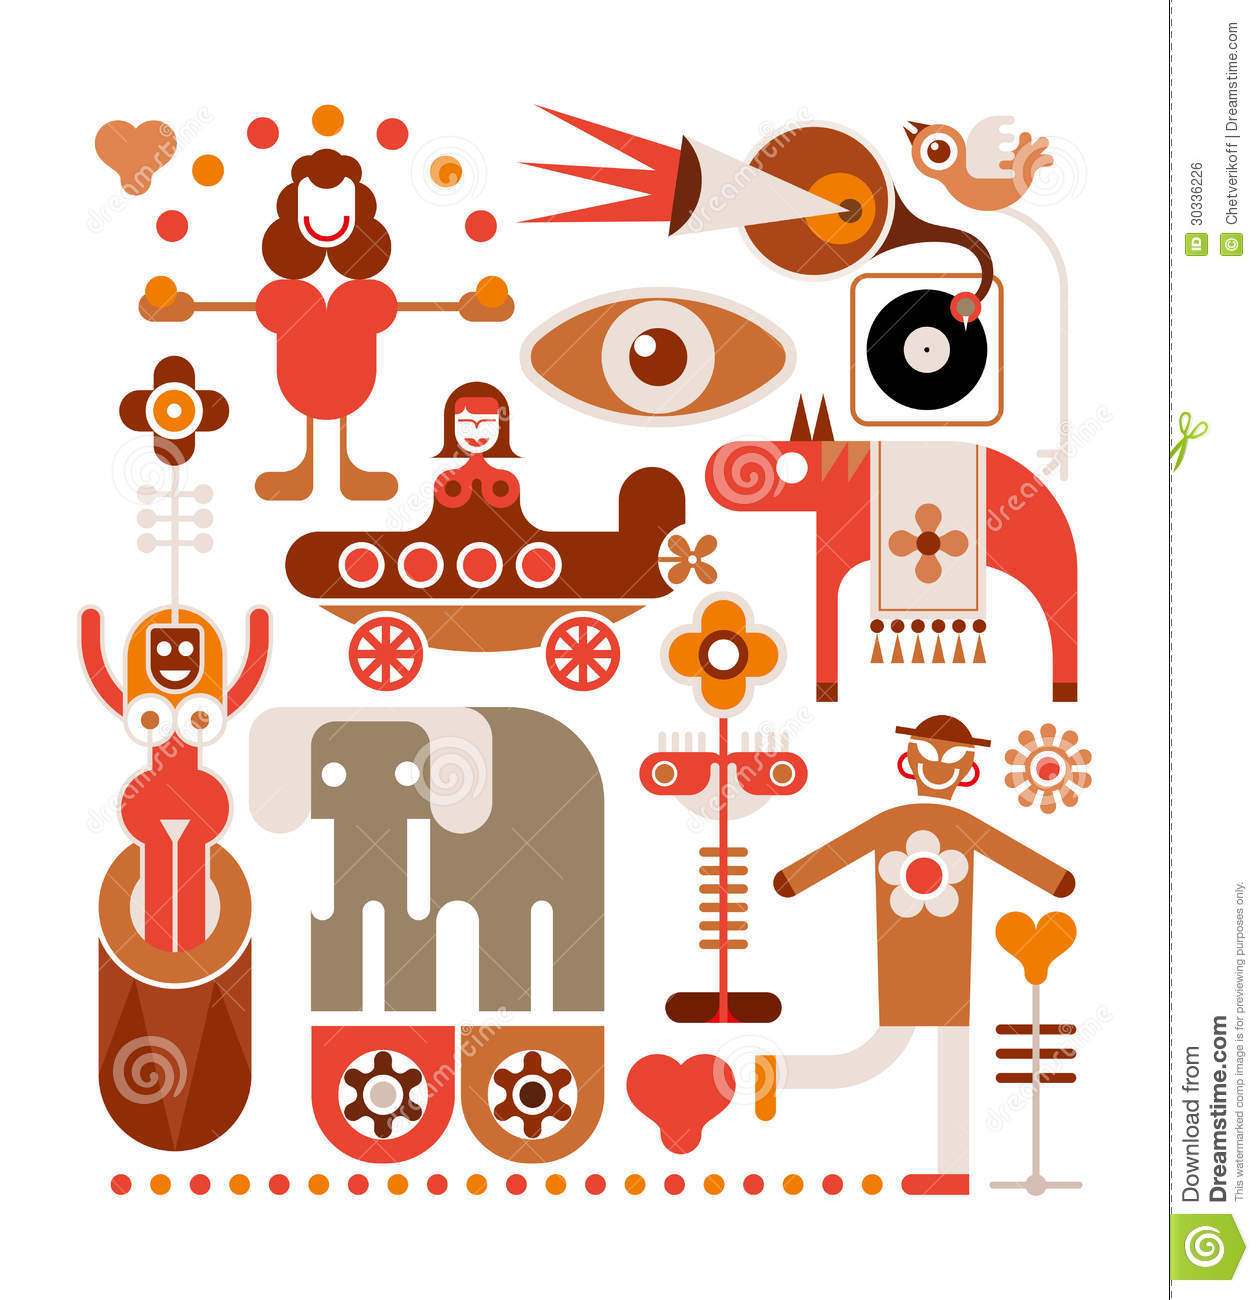 Circus - Vector Illustration Royalty Free Stock Image - Image ...